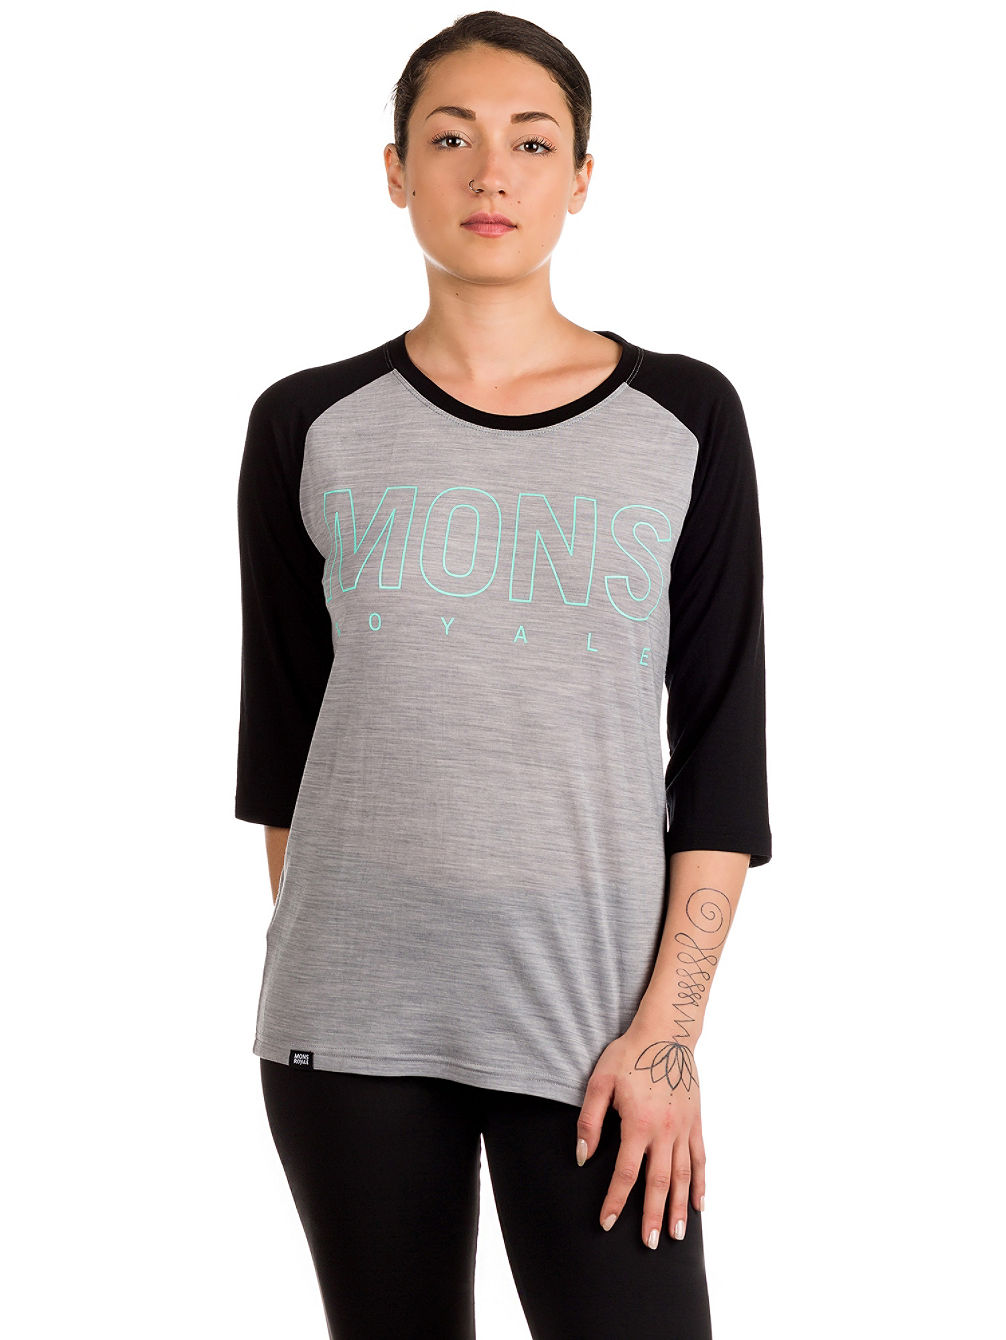 Merino Phoenix 3/4 Raglan Box Long Sleev